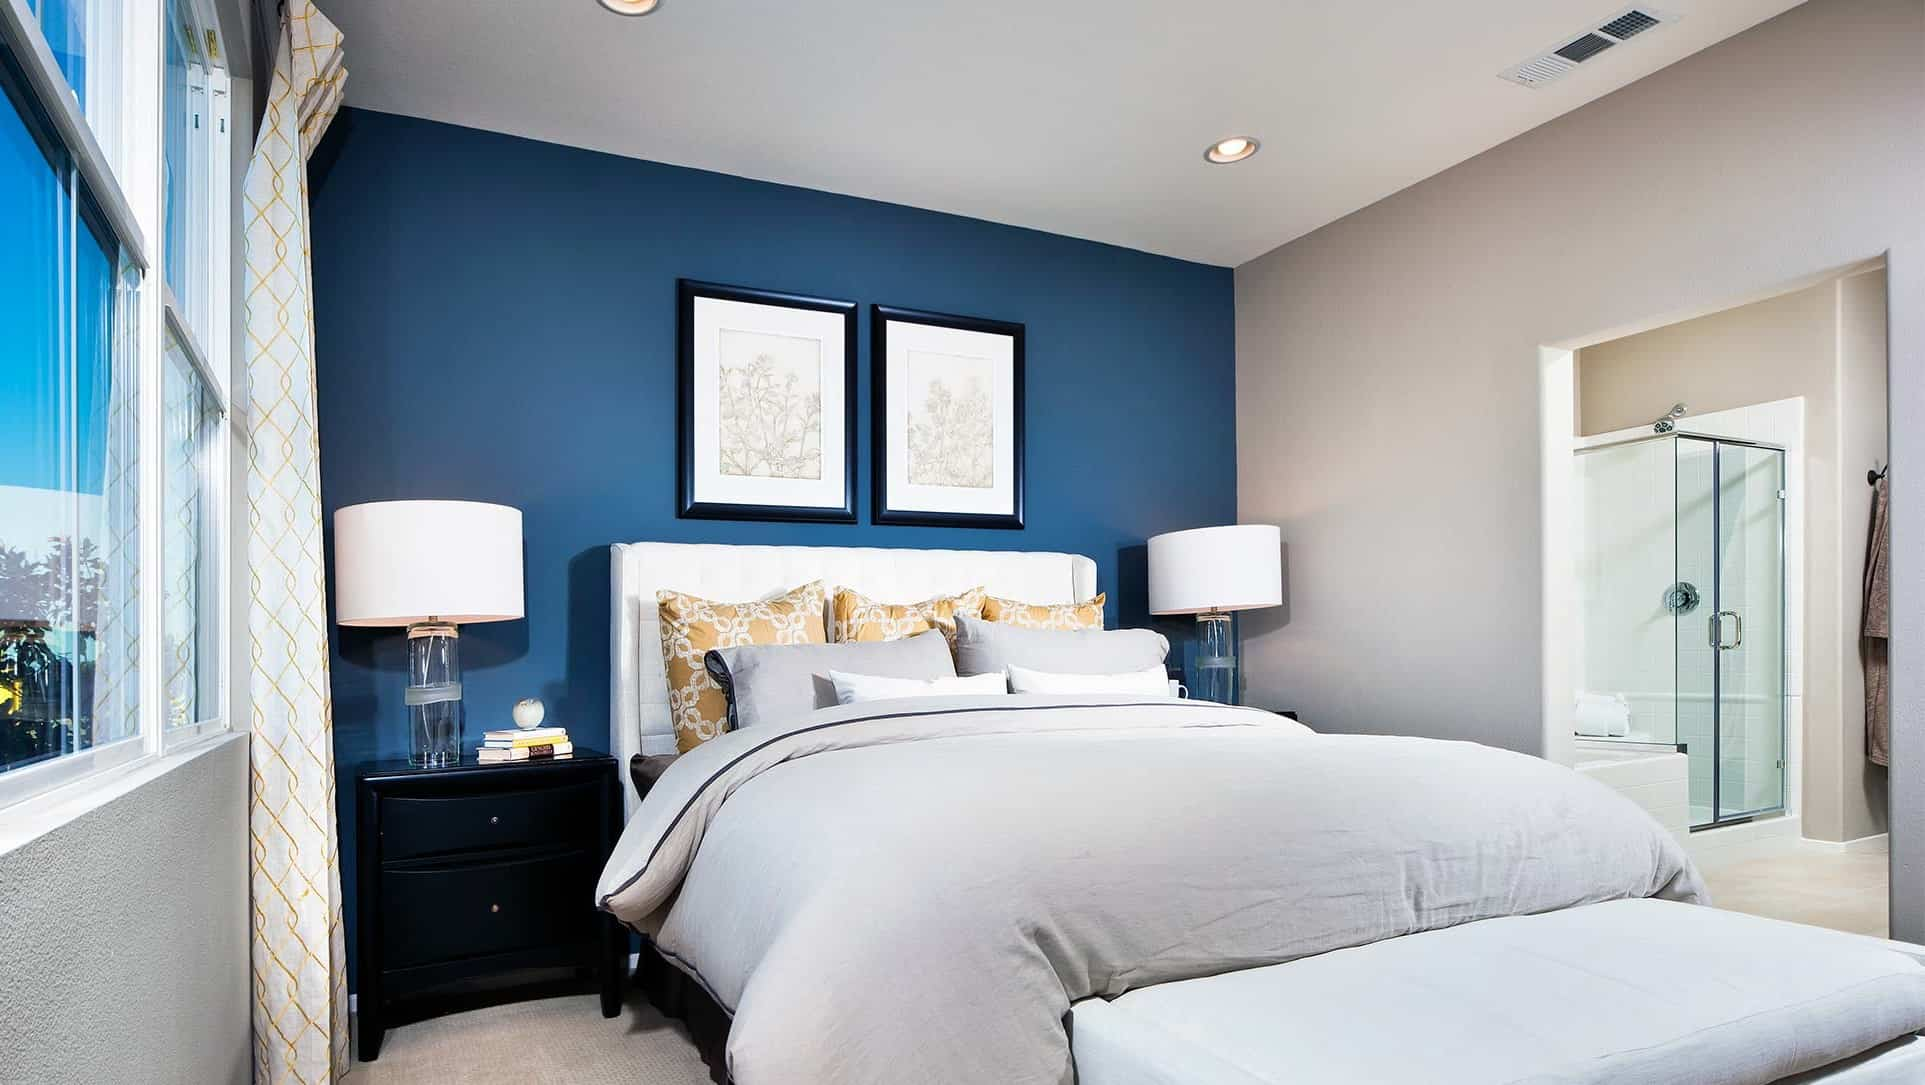 accents of taupe ina room